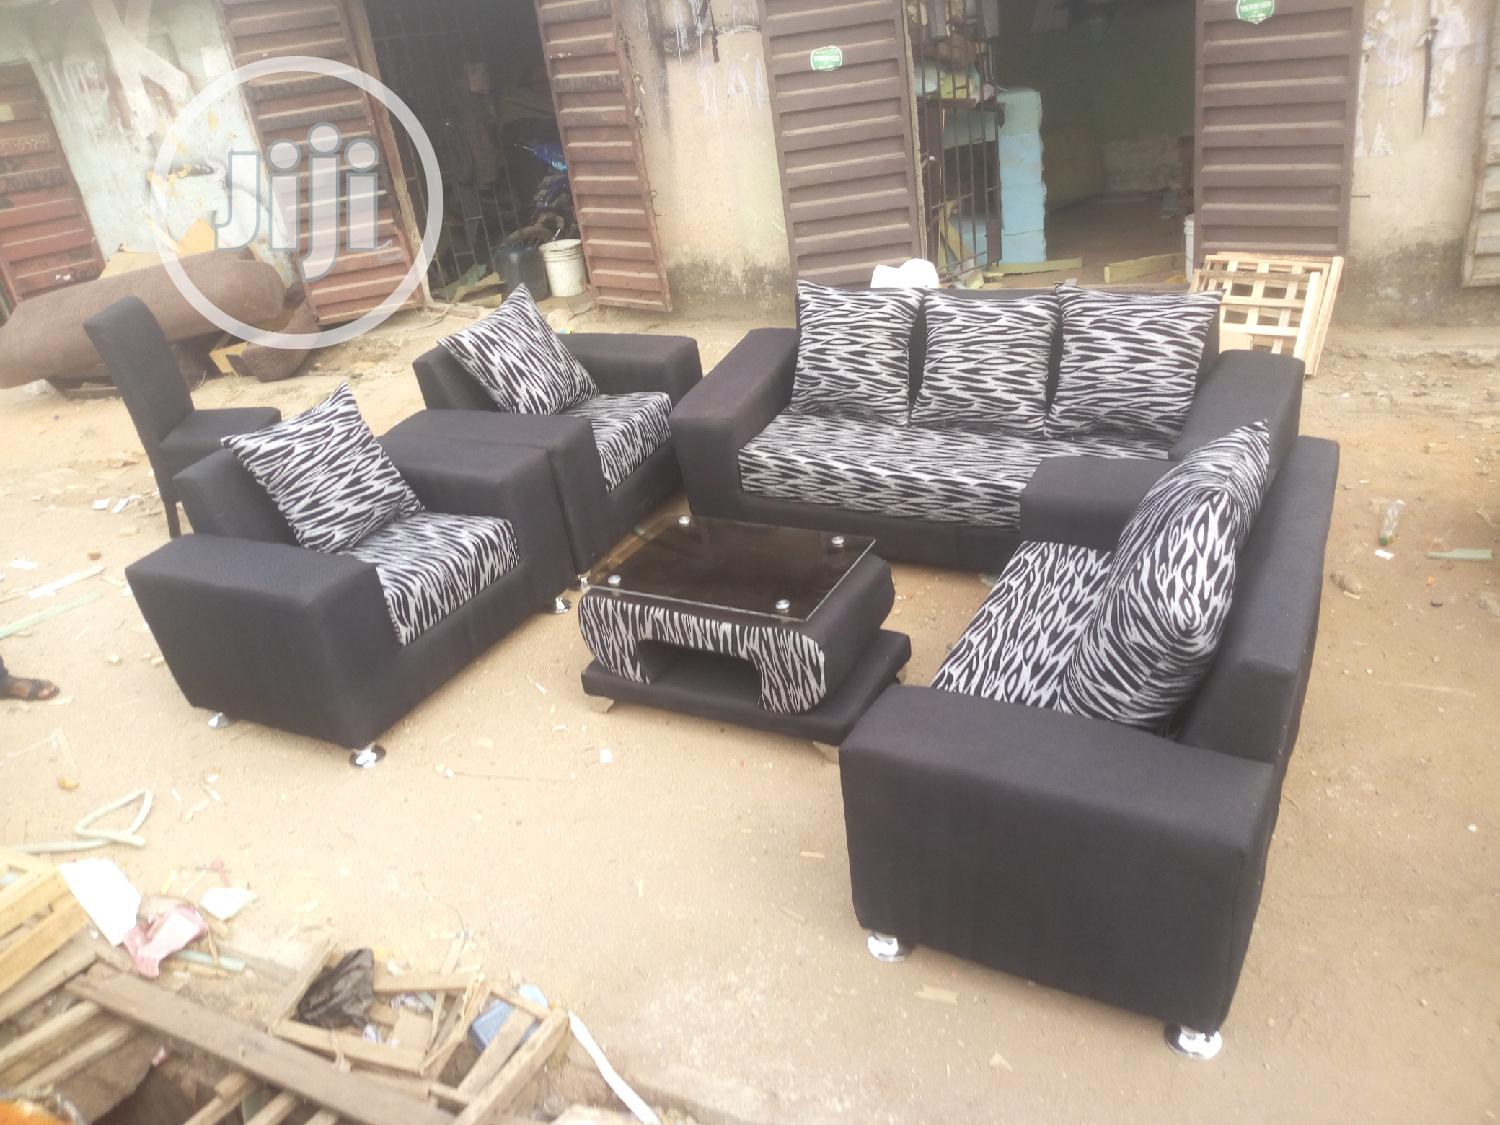 Seven Seater Sofa Chair With Table | Furniture for sale in Alimosho, Lagos State, Nigeria